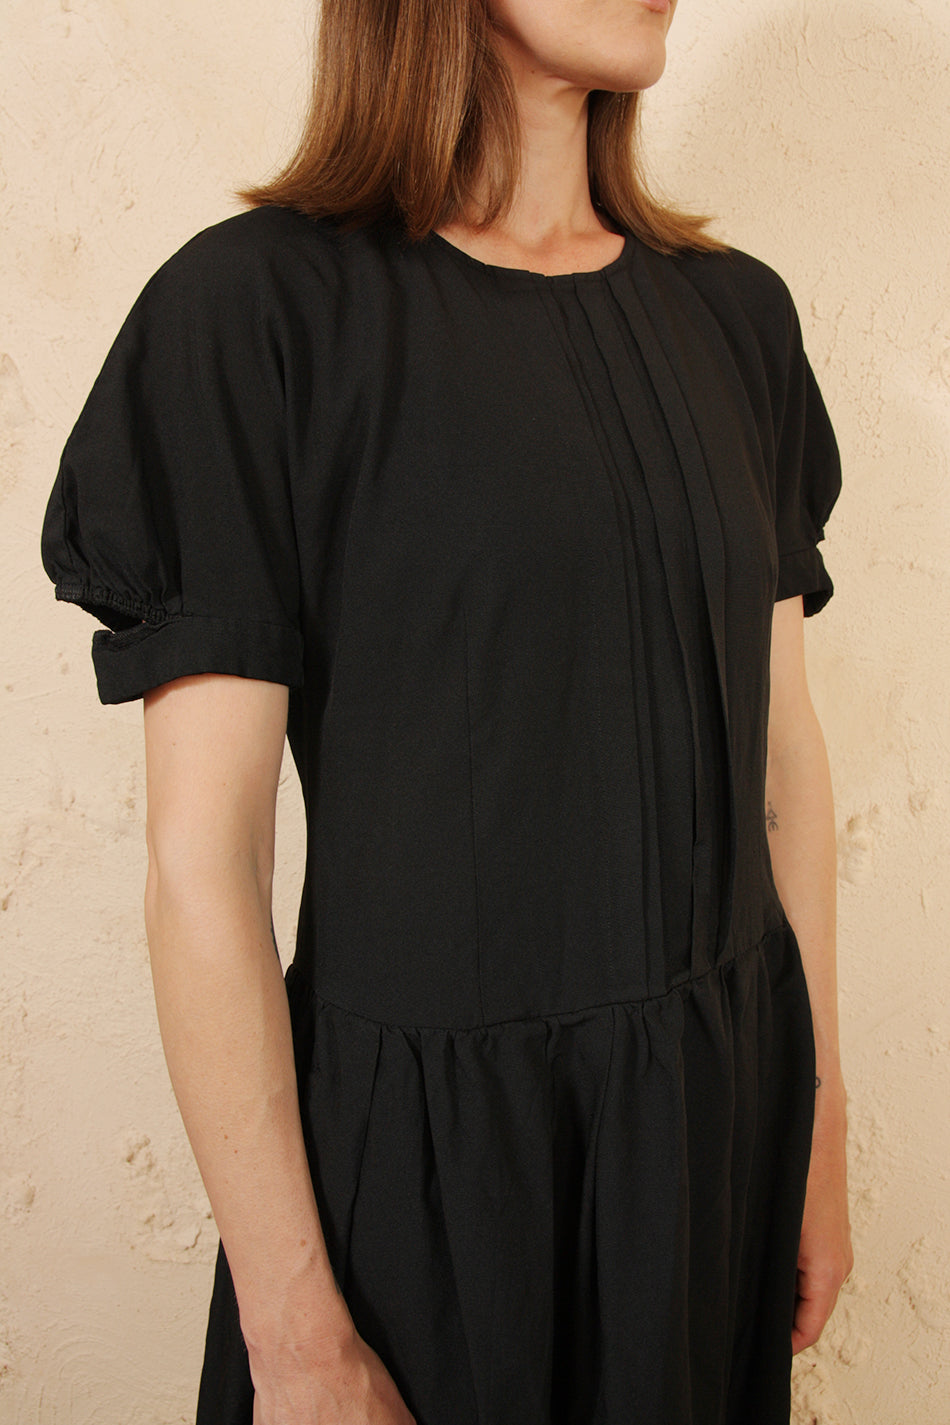 Puff Sleeve Black Dress